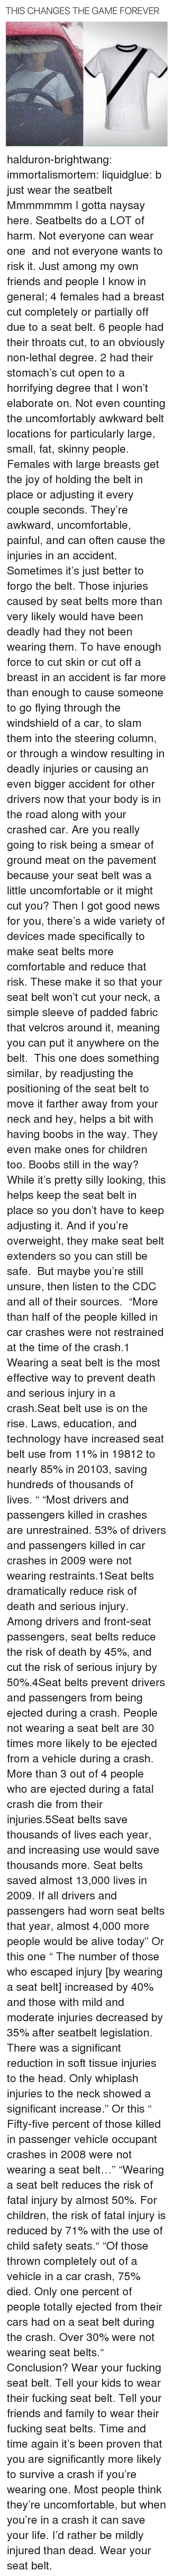 cdc: THIS CHANGES THE GAME FOREVER halduron-brightwang:  immortalismortem:  liquidglue:   b just wear the seatbelt   Mmmmmmm I gotta naysay here. Seatbelts do a LOT of harm. Not everyone can wear one and not everyone wants to risk it. Just among my own friends and people I know in general; 4 females had a breast cut completely or partially off due to a seat belt. 6 people had their throats cut, to an obviously non-lethal degree. 2 had their stomach's cut open to a horrifying degree that I won't elaborate on. Not even counting the uncomfortably awkward belt locations for particularly large, small, fat, skinny people. Females with large breasts get the joy of holding the belt in place or adjusting it every couple seconds. They're awkward, uncomfortable, painful, and can often cause the injuries in an accident. Sometimes it's just better to forgo the belt.  Those injuries caused by seat belts more than very likely would have been deadly had they not been wearing them. To have enough force to cut skin or cut off a breast in an accident is far more than enough to cause someone to go flying through the windshield of a car, to slam them into the steering column, or through a window resulting in deadly injuries or causing an even bigger accident for other drivers now that your body is in the road along with your crashed car. Are you really going to risk being a smear of ground meat on the pavement because your seat belt was a little uncomfortable or it might cut you? Then I got good news for you, there's a wide variety of devices made specifically to make seat belts more comfortable and reduce that risk. These make it so that your seat belt won't cut your neck, a simple sleeve of padded fabric that velcros around it, meaning you can put it anywhere on the belt. This one does something similar, by readjusting the positioning of the seat belt to move it farther away from your neck and hey, helps a bit with having boobs in the way. They even make ones for children too. Boobs s